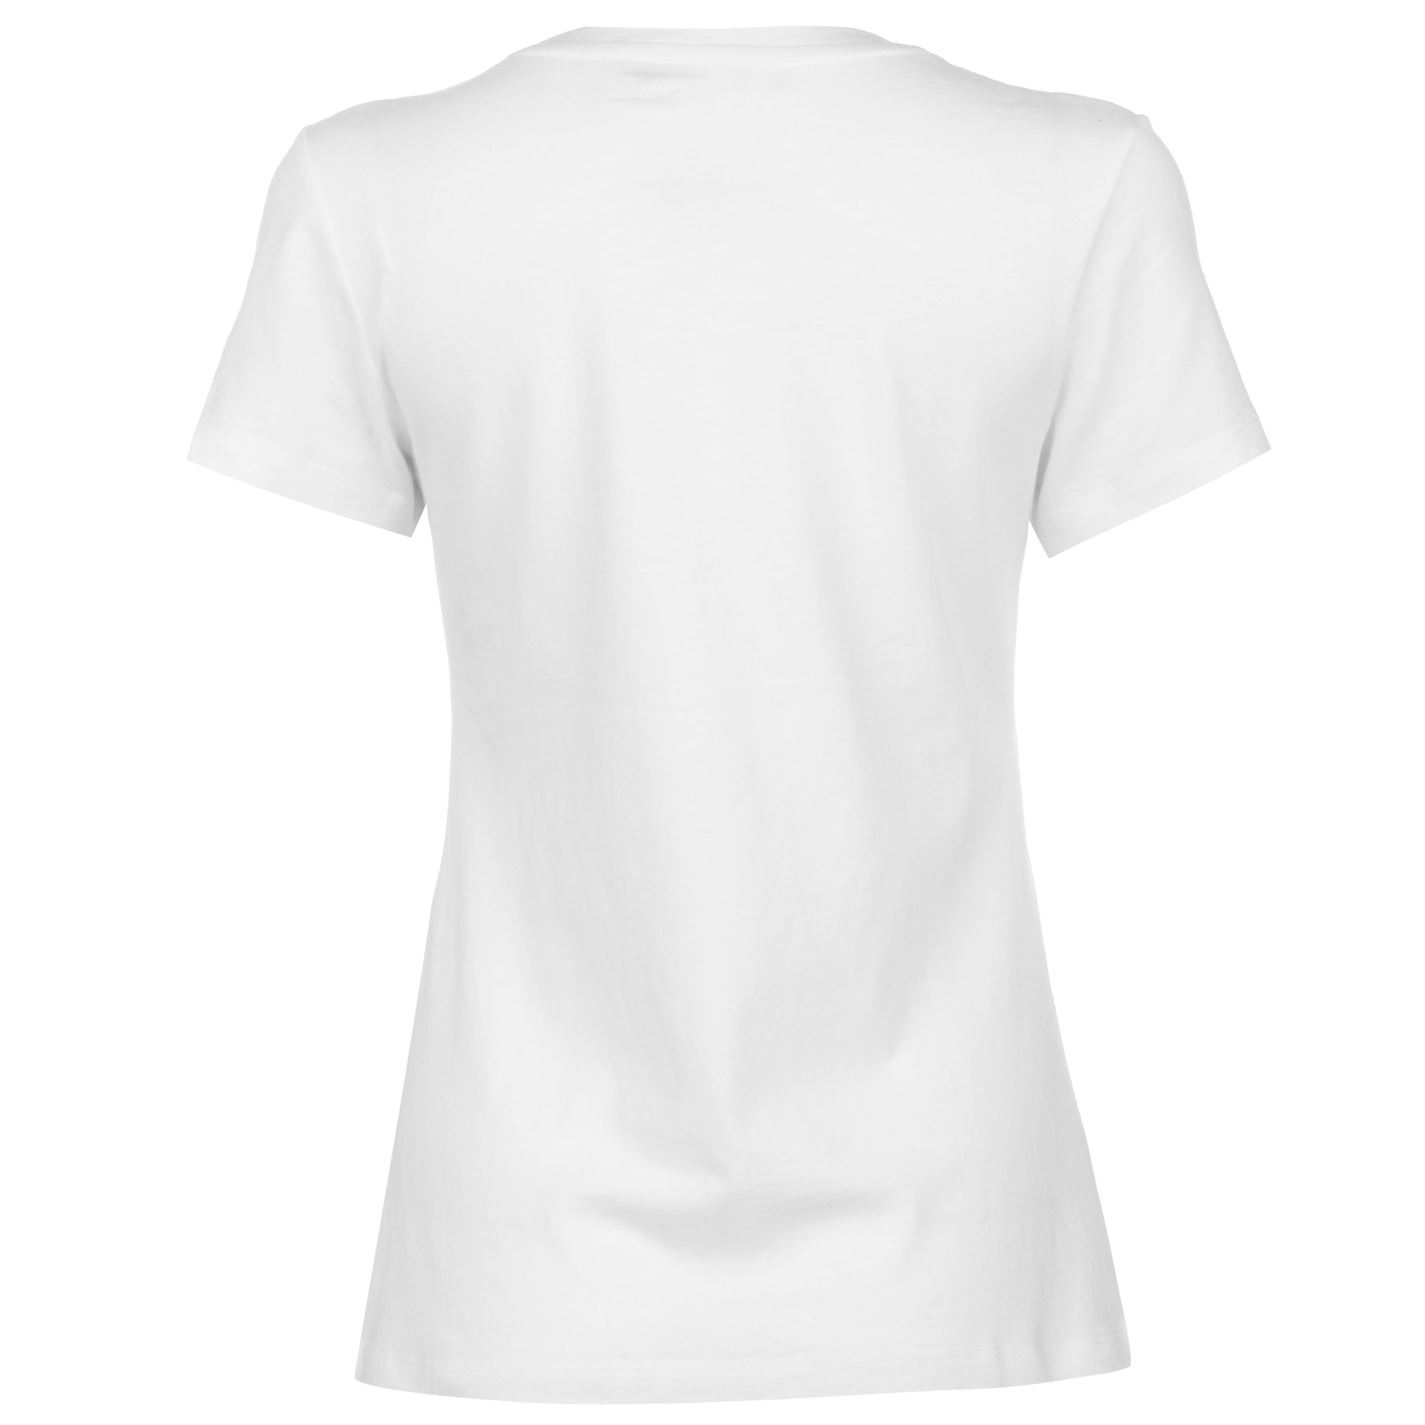 Womens-Calvin-Klein-Core-Slim-T-Shirt-Crew-Neck-Short-Sleeve-New thumbnail 6